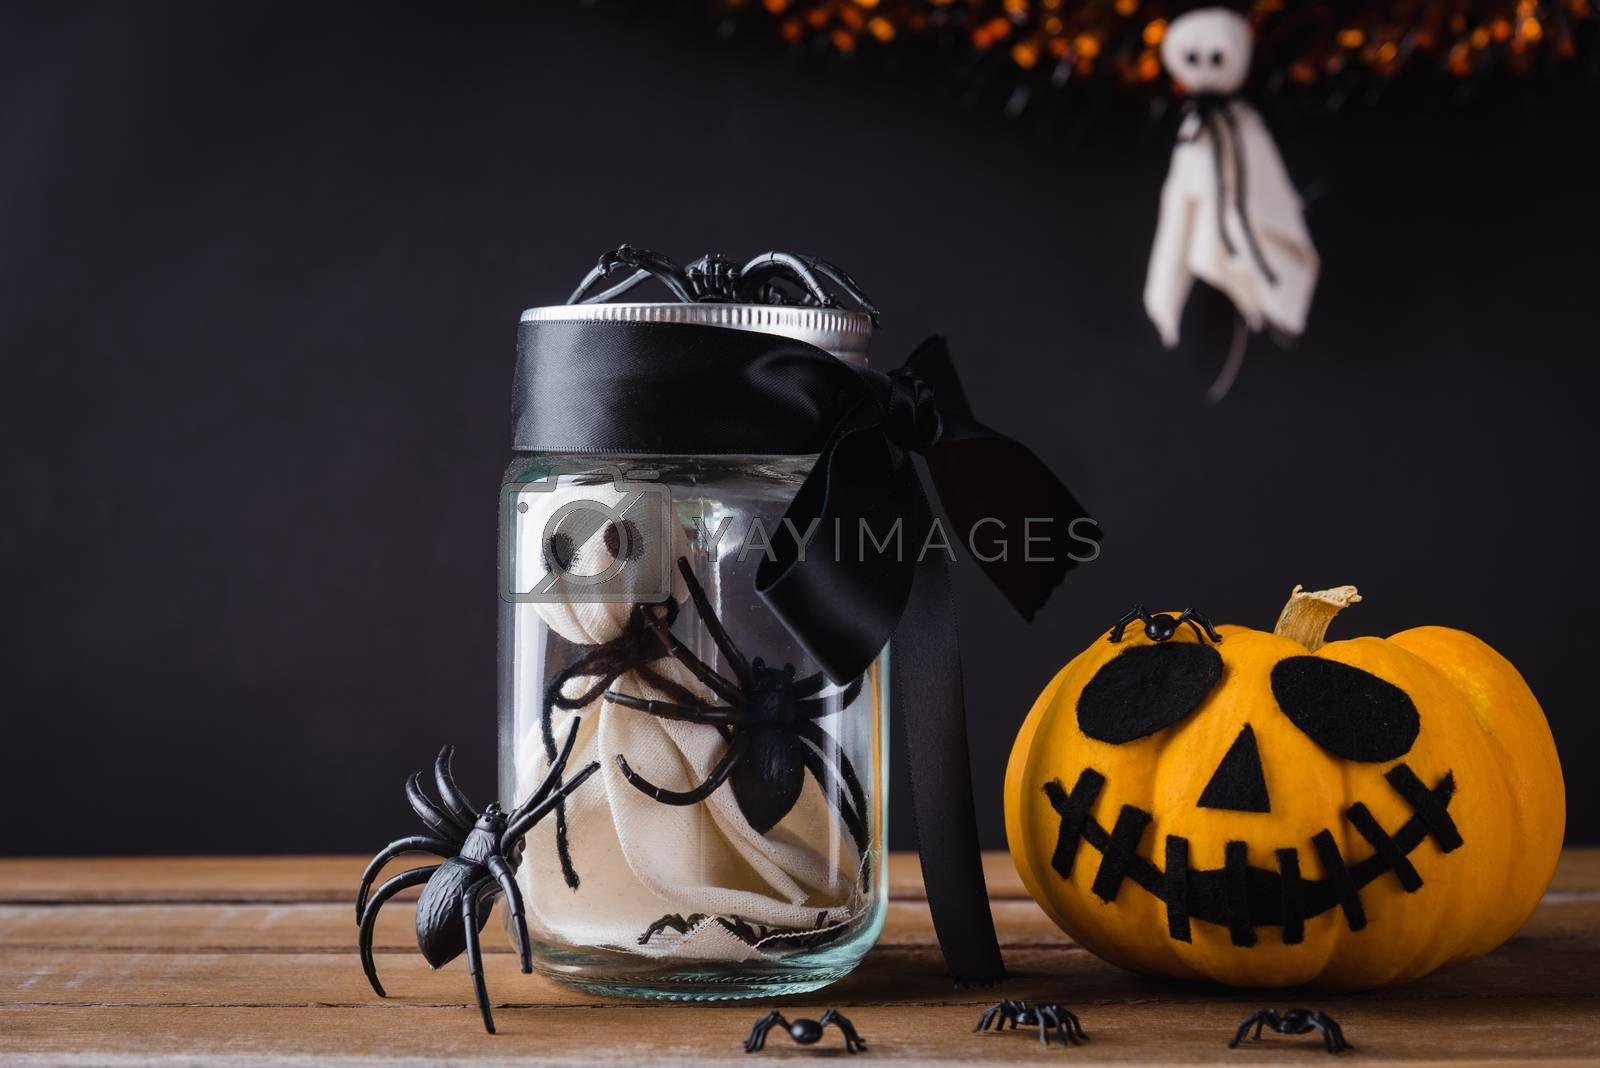 Funny Halloween day decoration party, The white ghost scary face and black spider in jar glass and pumpkin out side on wooden table, studio shot isolated on black background, Happy holiday concept